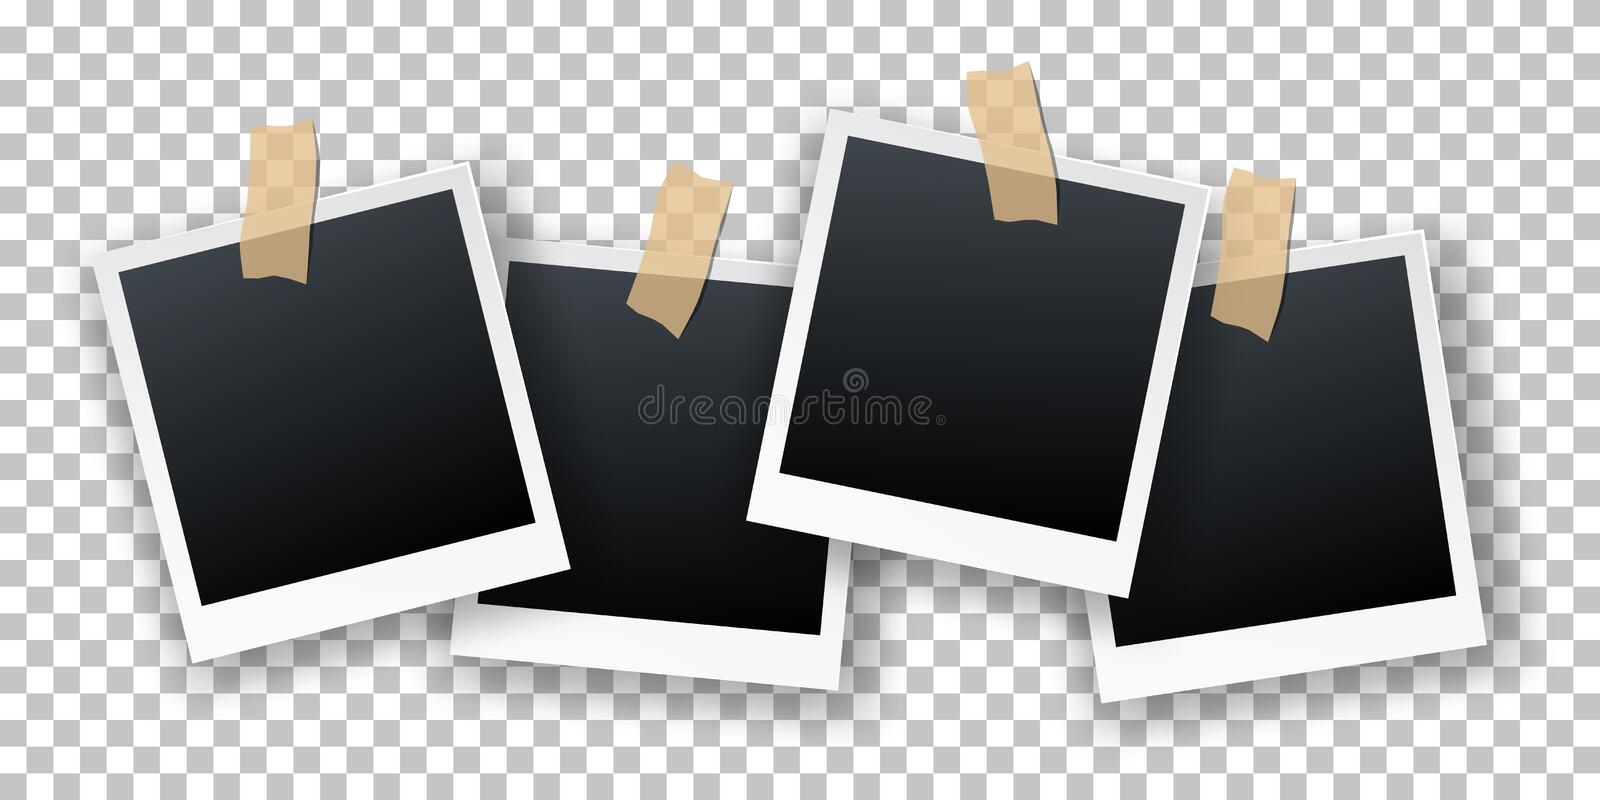 Vector retro realistic instant photo cards hanging on sticky tape isolated on transparent background. Illustration of polaroid. Photo frames with shadow effect stock illustration